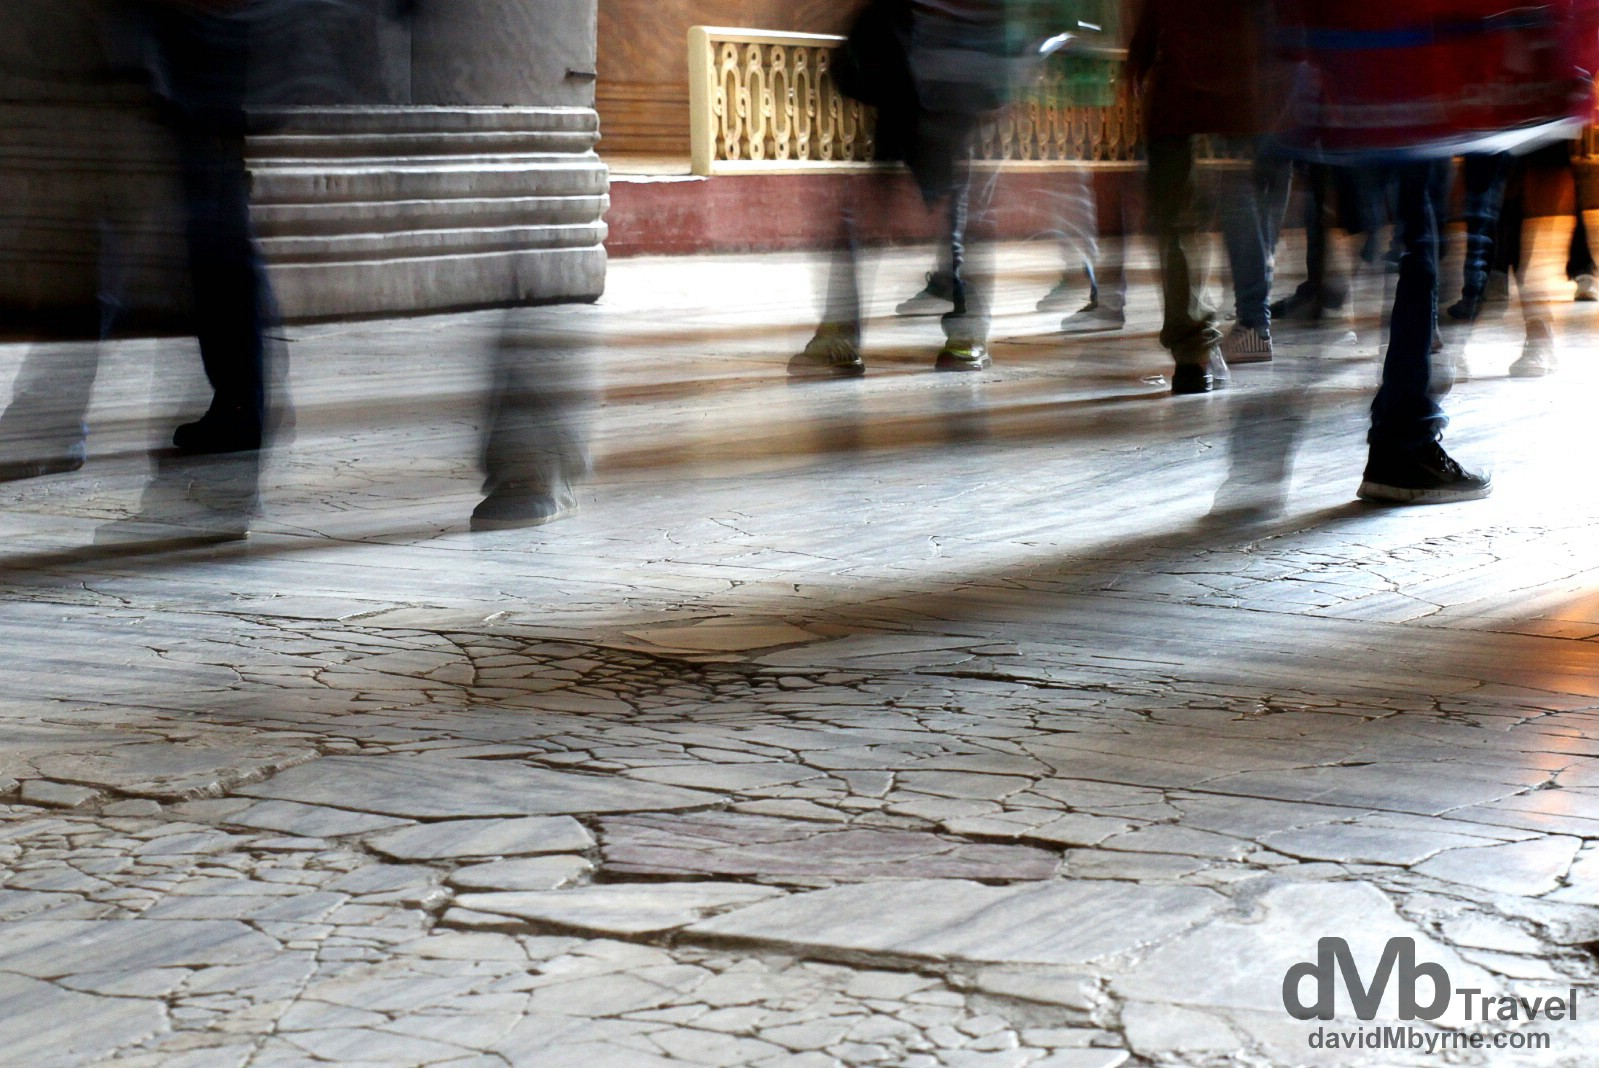 1477-year-old cracks in the marble floor of the Aya Sofya in Istanbul, Turkey. April 10th, 2014.